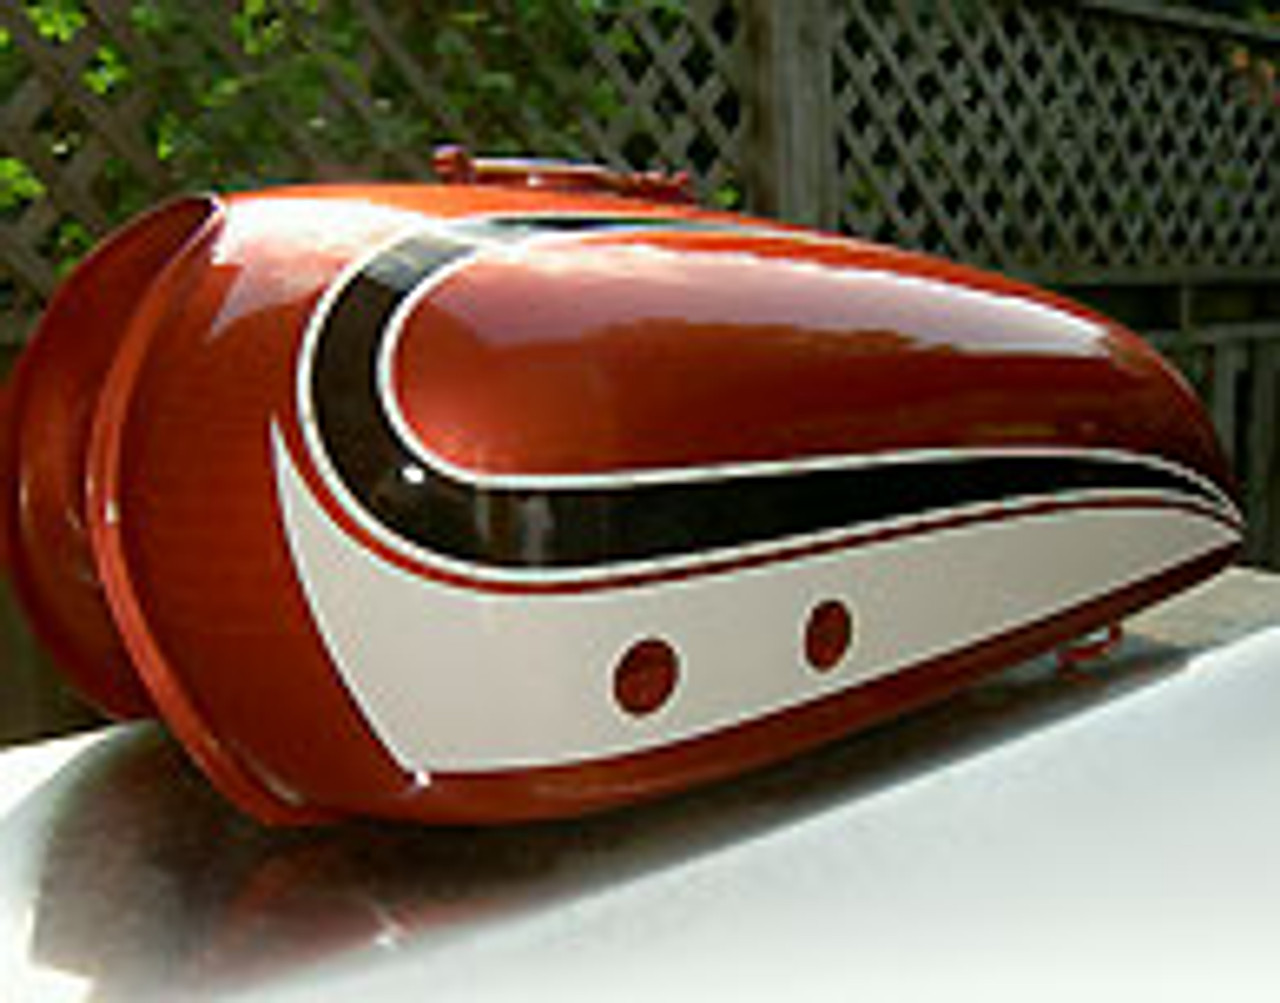 YAMAHA 1974 RD250 RD 250 OIL TANK SIDE COVER DECALS GRAPHICS